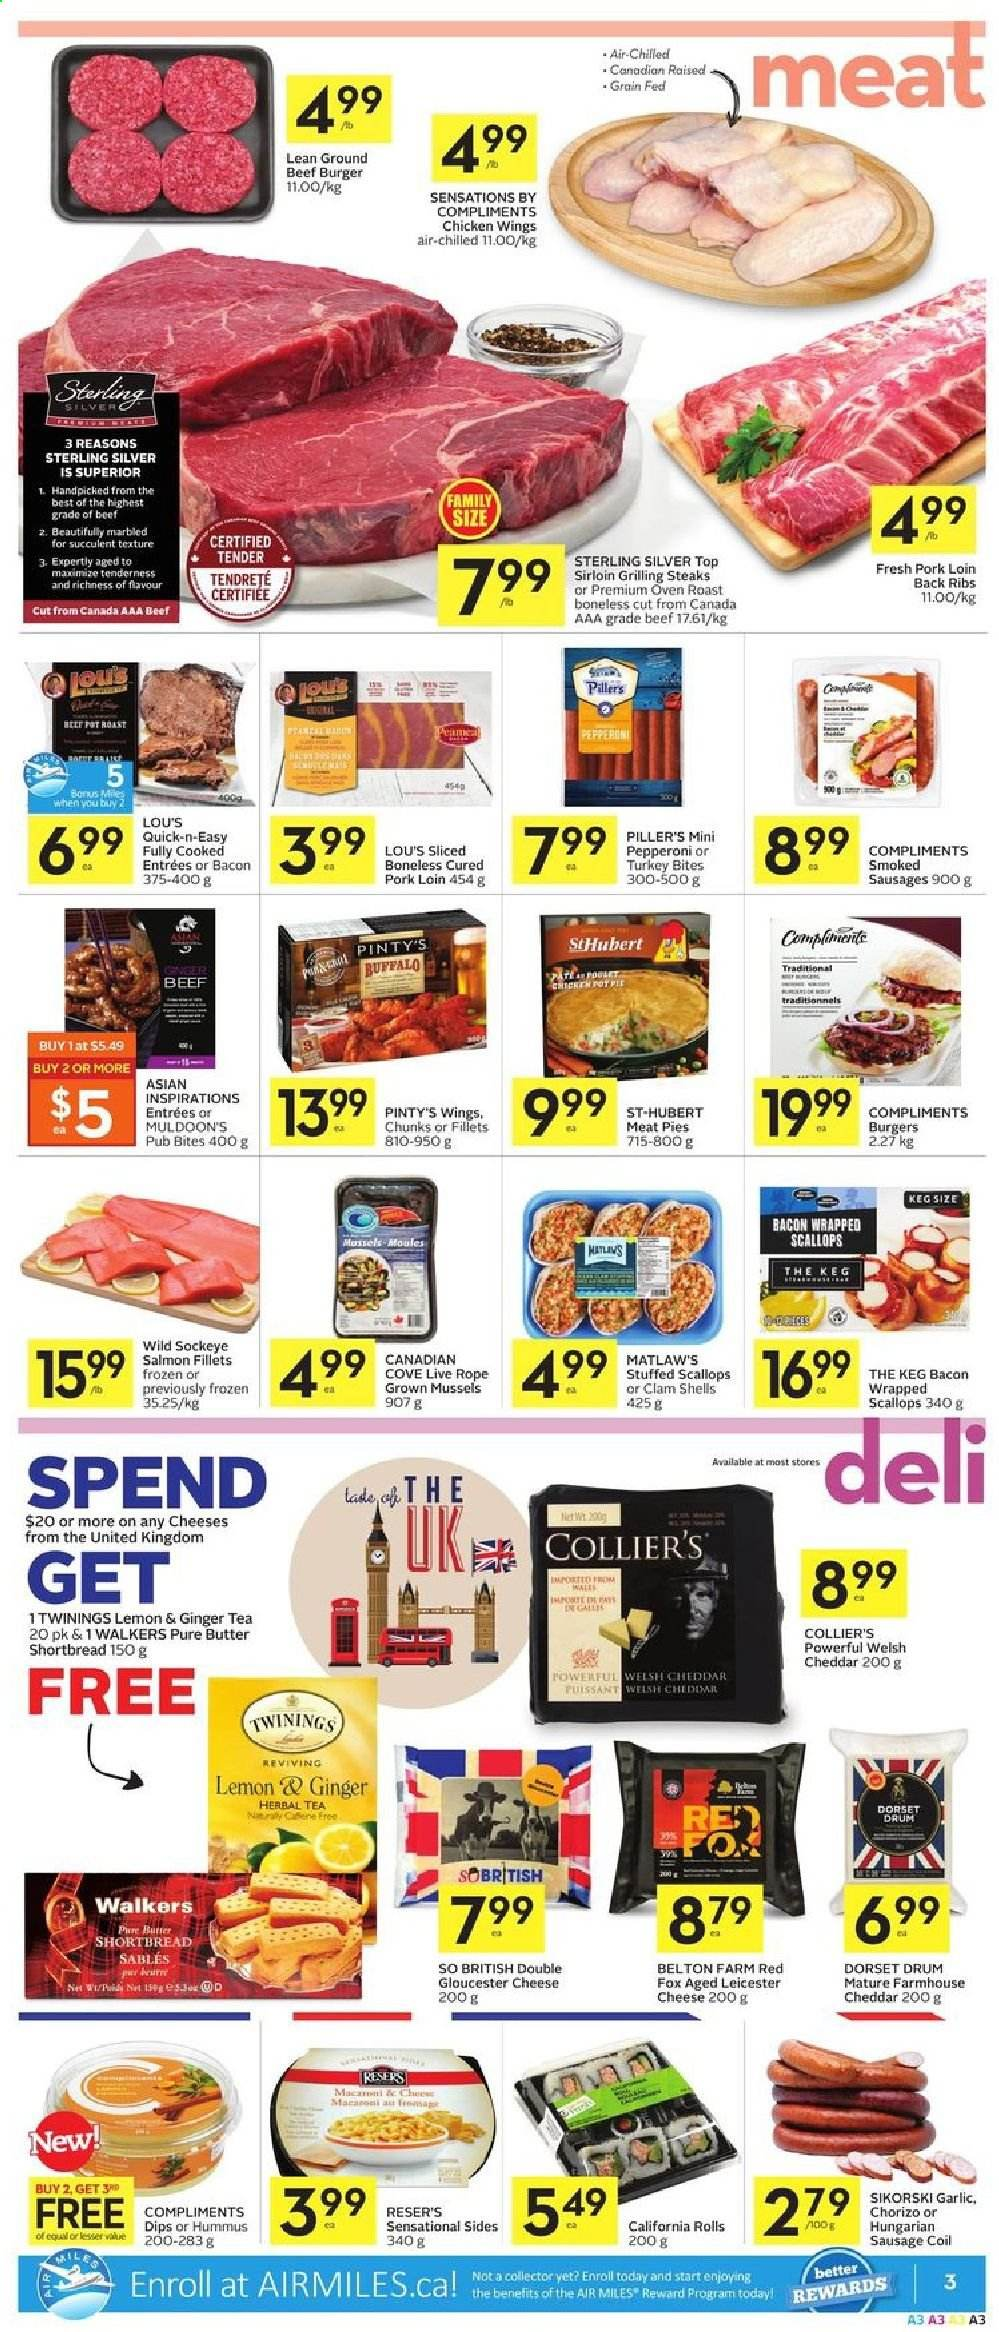 Foodland Flyer  - May 09, 2019 - May 15, 2019. Page 3.